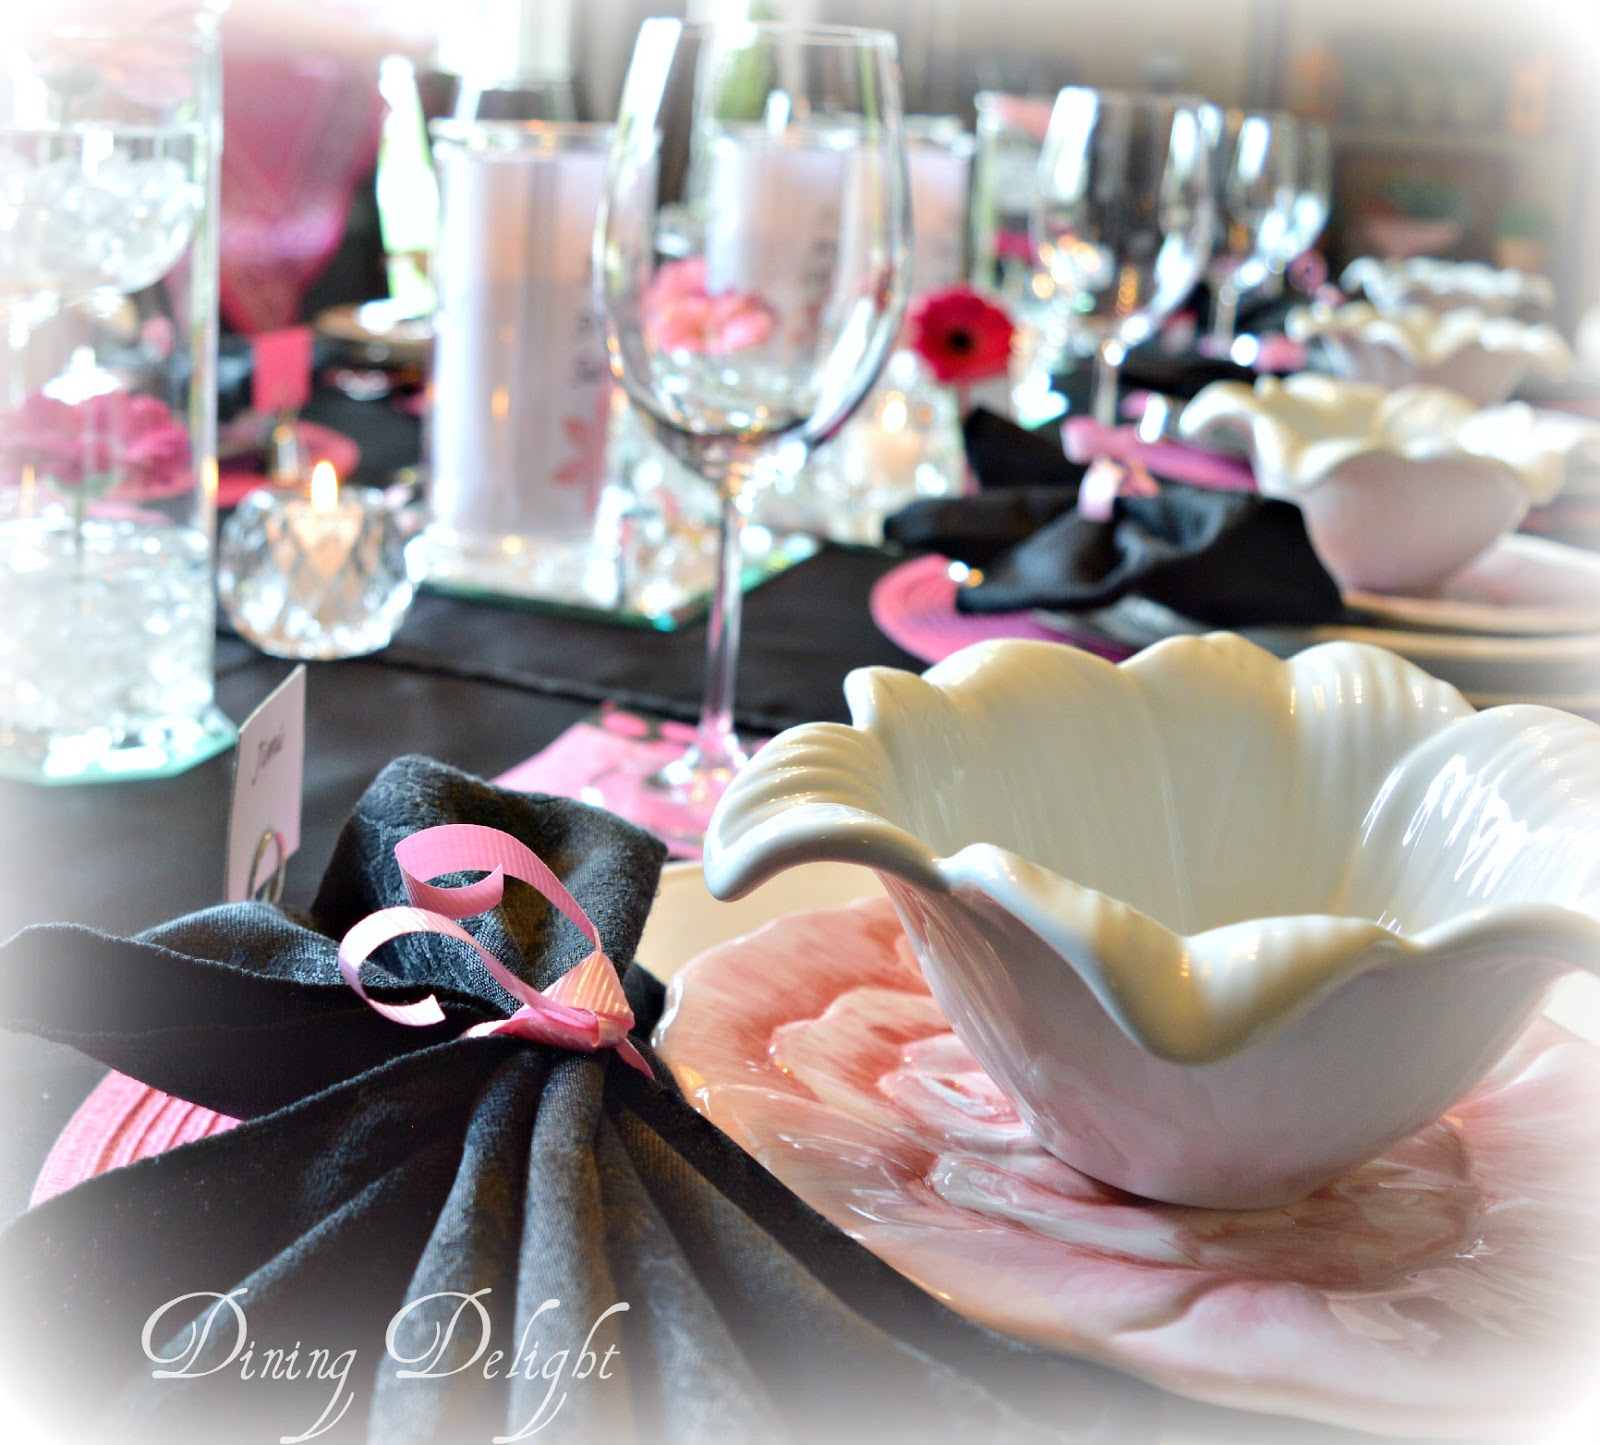 Dining Delight: 50th Birthday & Farewell Dinner Party